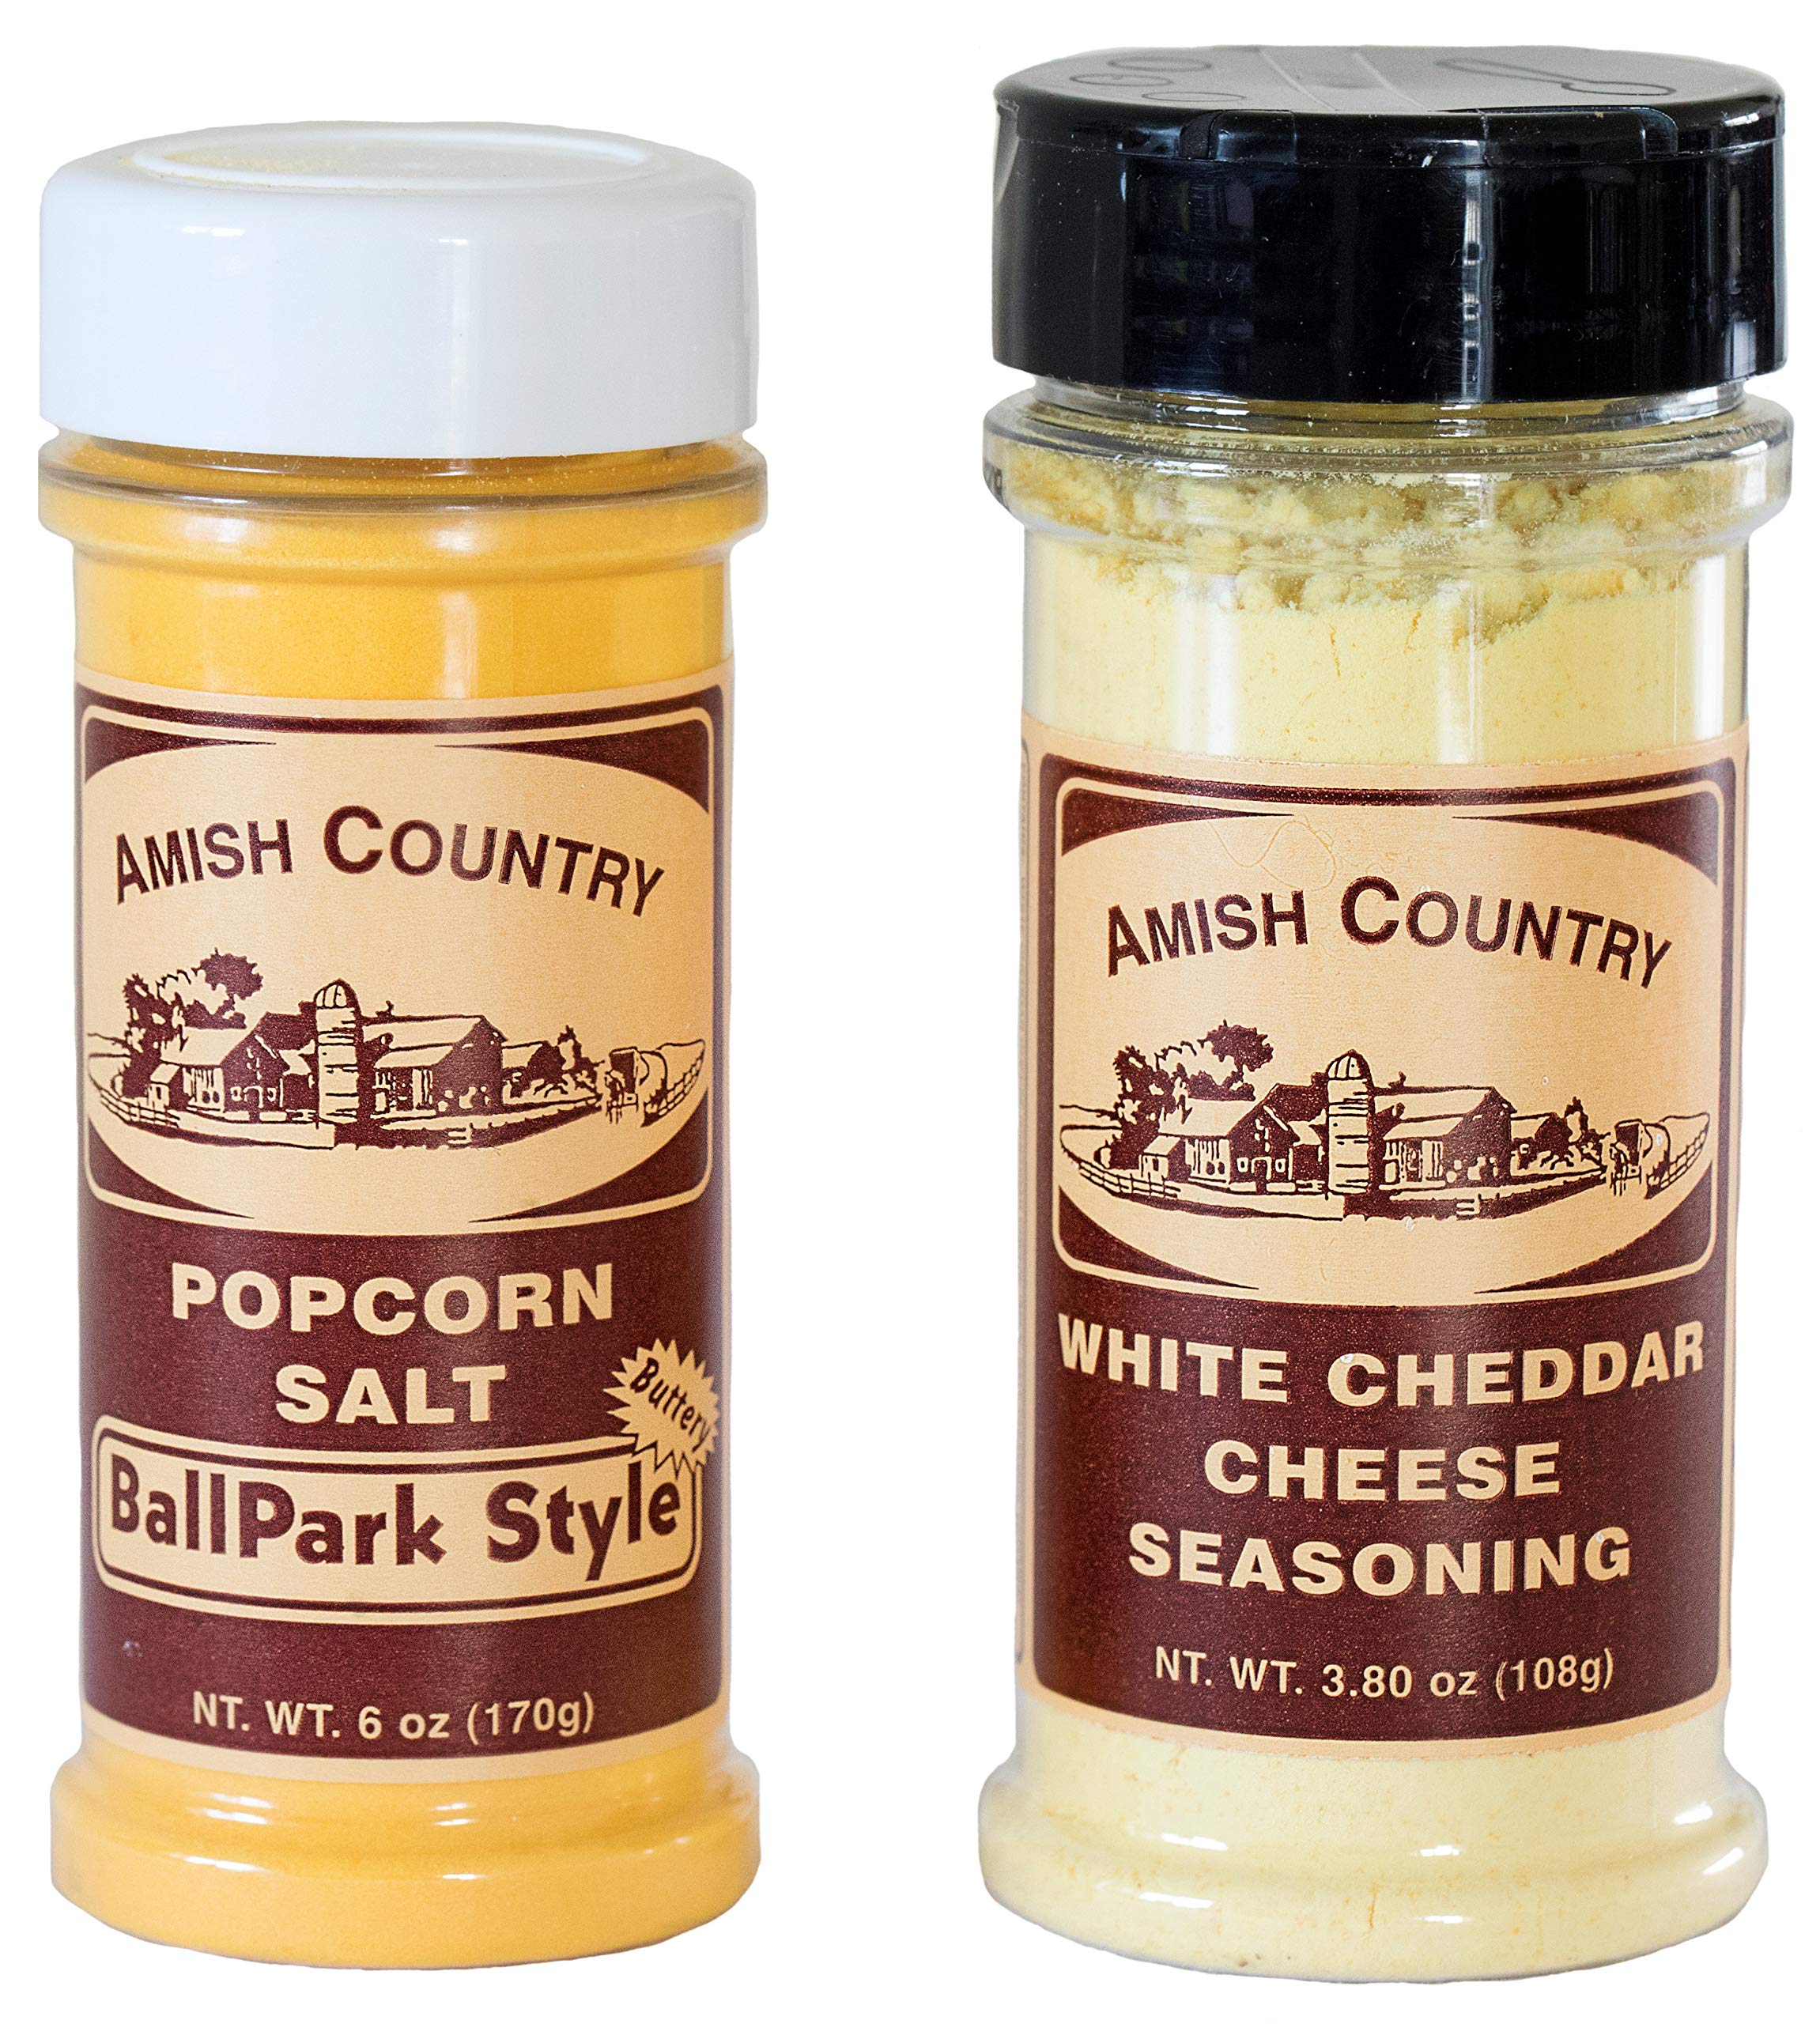 Amish Country Popcorn - BallPark Style Buttersalt (6 Oz) & White Cheddar (3.8 Oz ) 2 Pack Popcorn Seasonings - Old Fashioned with Recipe Guide by Amish Country Popcorn